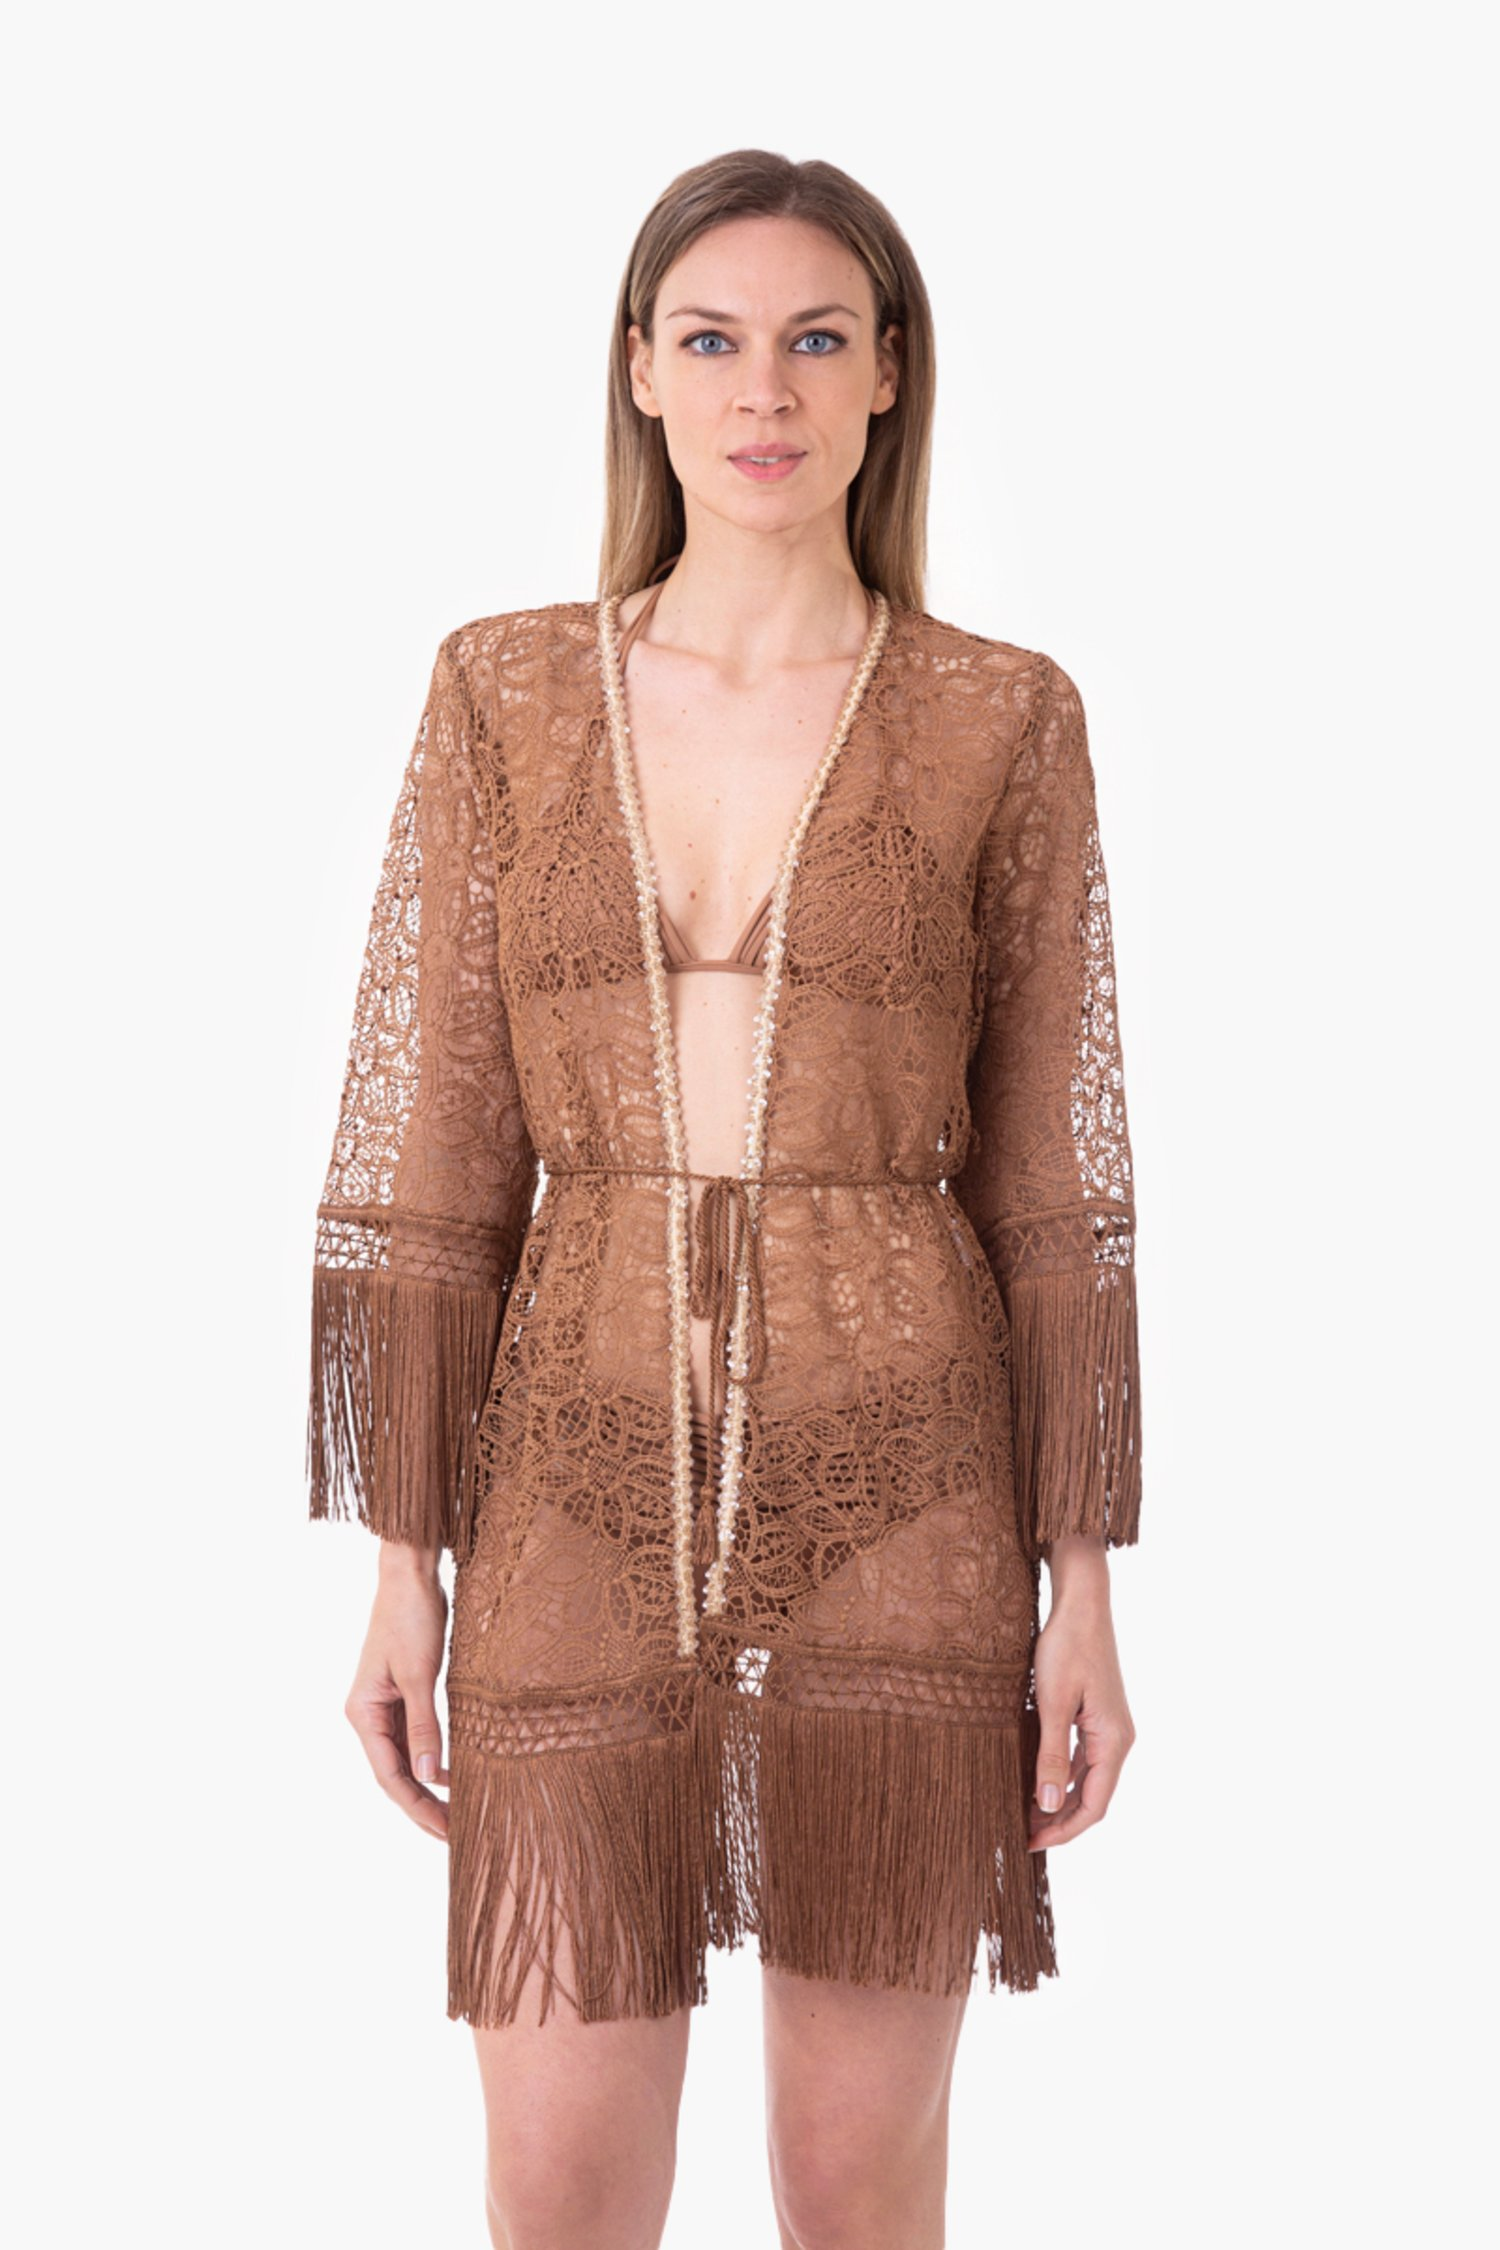 MACRAME' LACE SHORT ROBE WITH PASSEMENTERIE - Pizzo Macrame' Rame